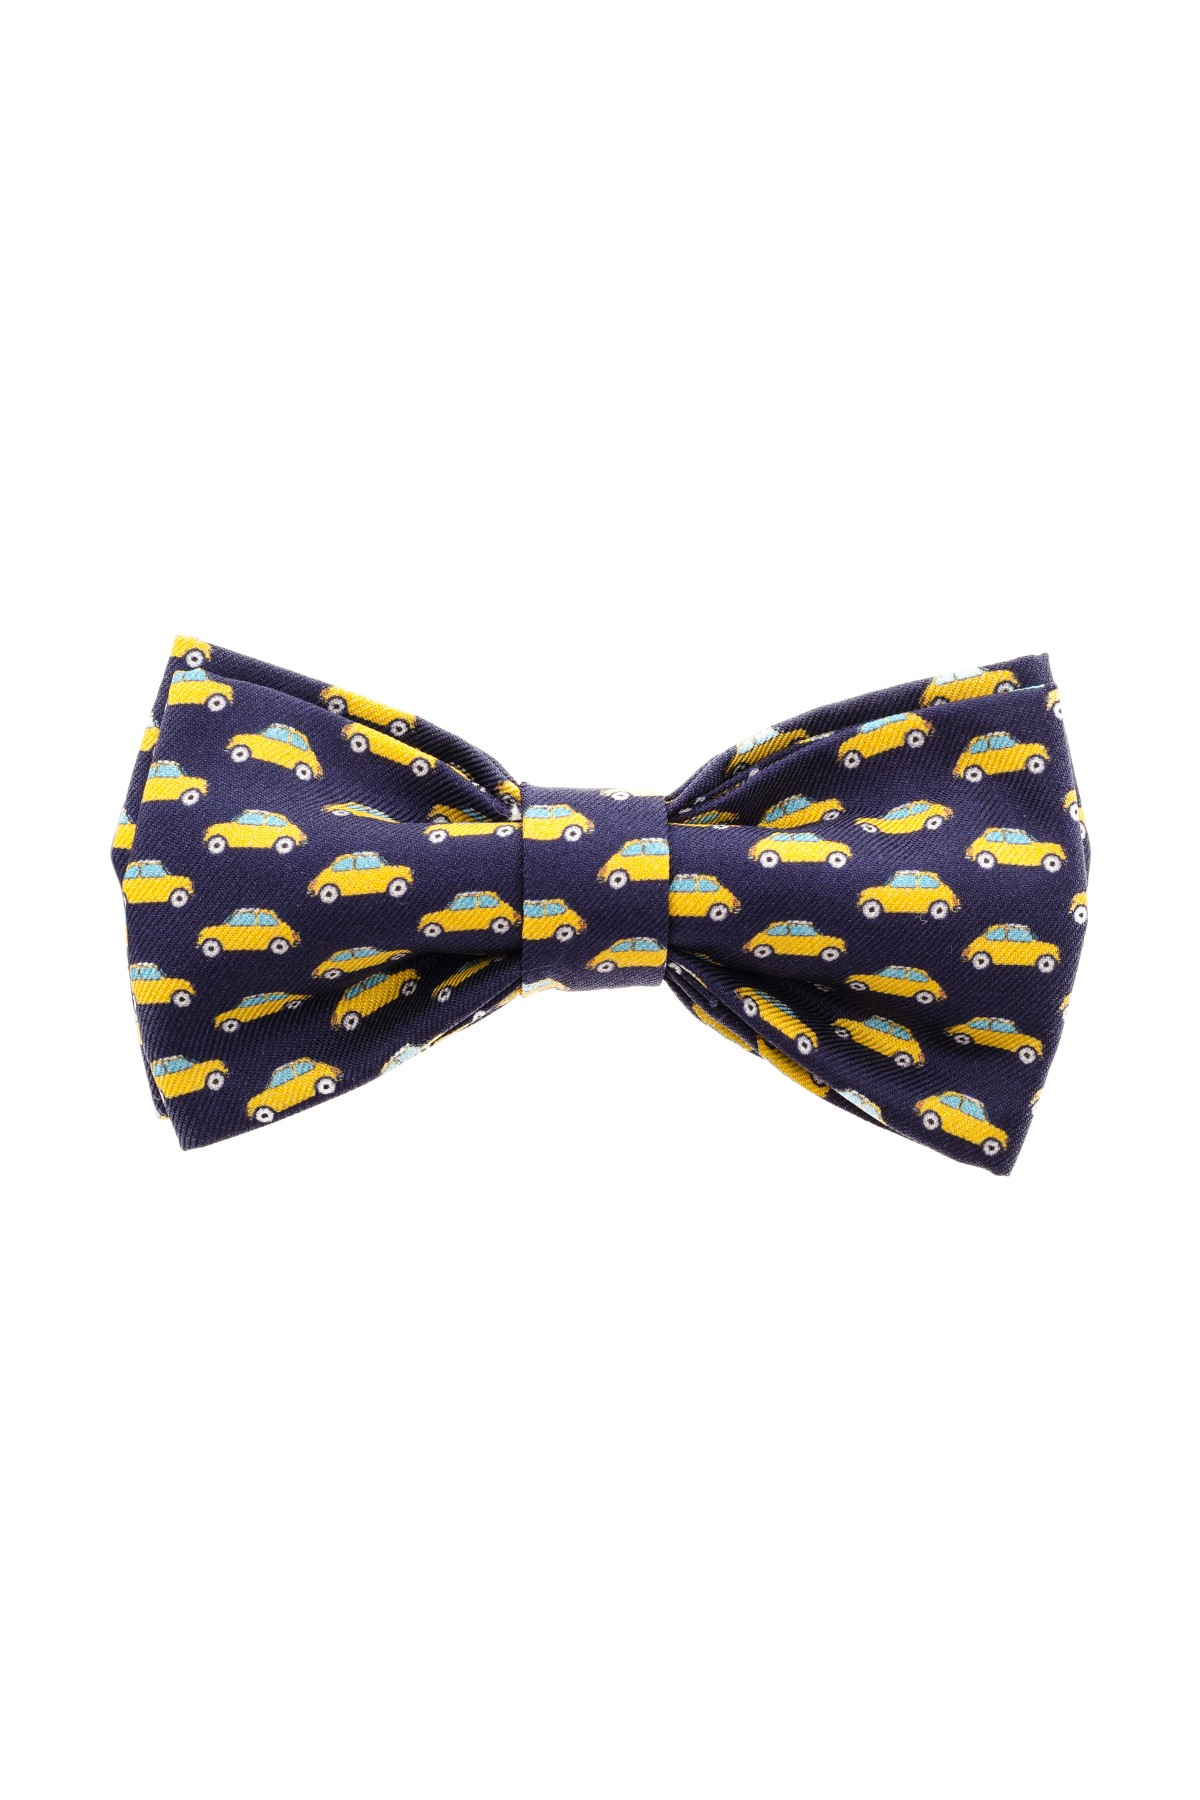 FEFE blue bowtie with yellow cars